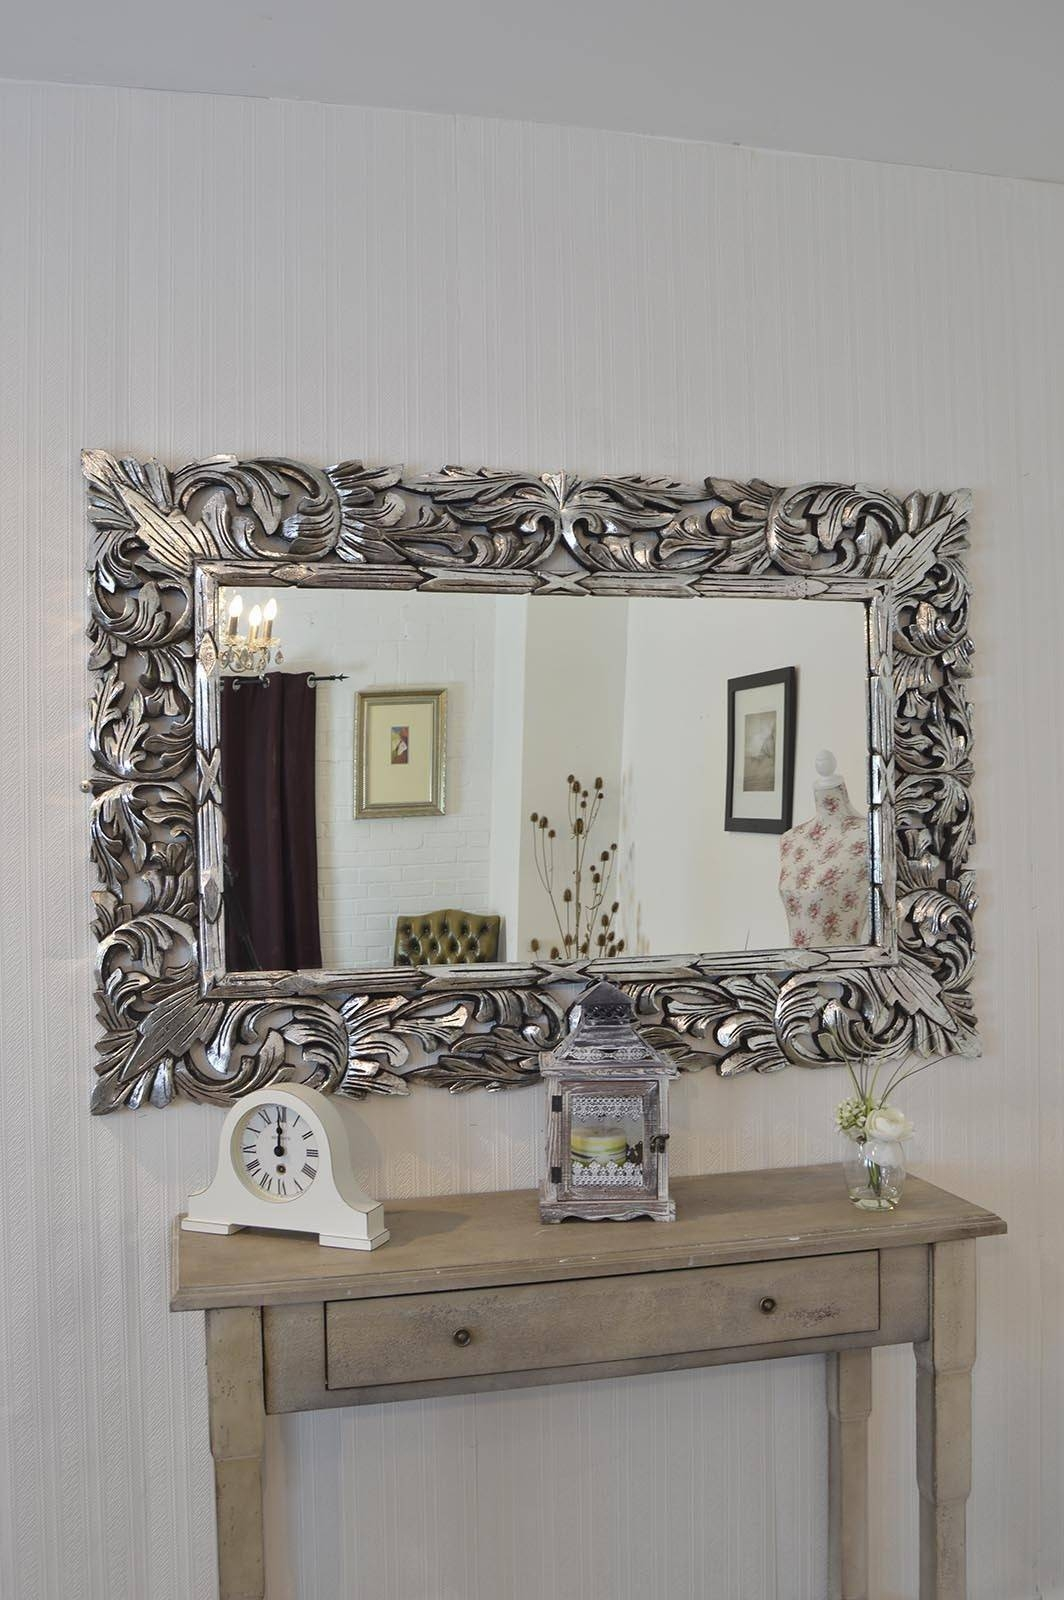 Large Silver Wall Mirror 57 Nice Decorating With Large Ornate Wall inside Ornate Silver Mirrors (Image 10 of 25)